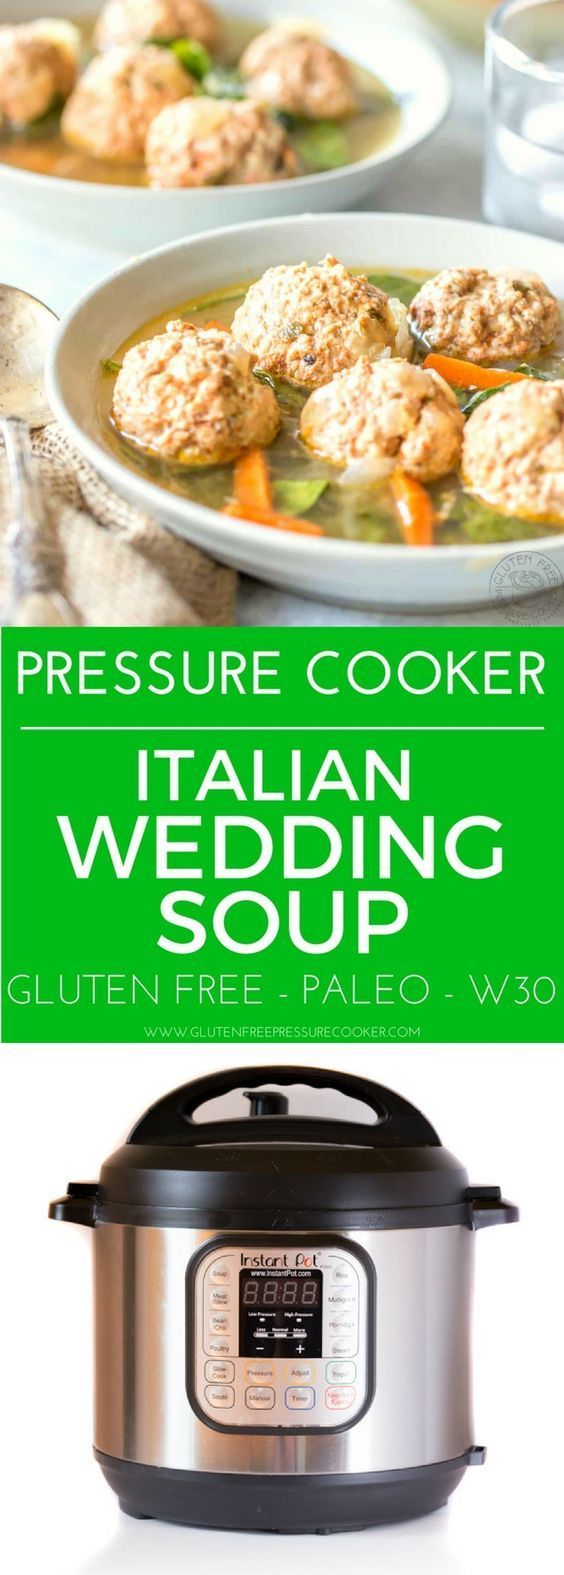 1 lb Italian sausage 454g 1 tbsp olive oil 1 large onion, chopped 2 large carrots, sliced thin 4 cups gluten free unsalted chicken stock 1 litre 1 cloves garlic 1/4 tsp salt 1/2 tsp pepper 4 tablespoons grated Parmesan cheese,optional to serve 2-3 cups baby spinach leaves